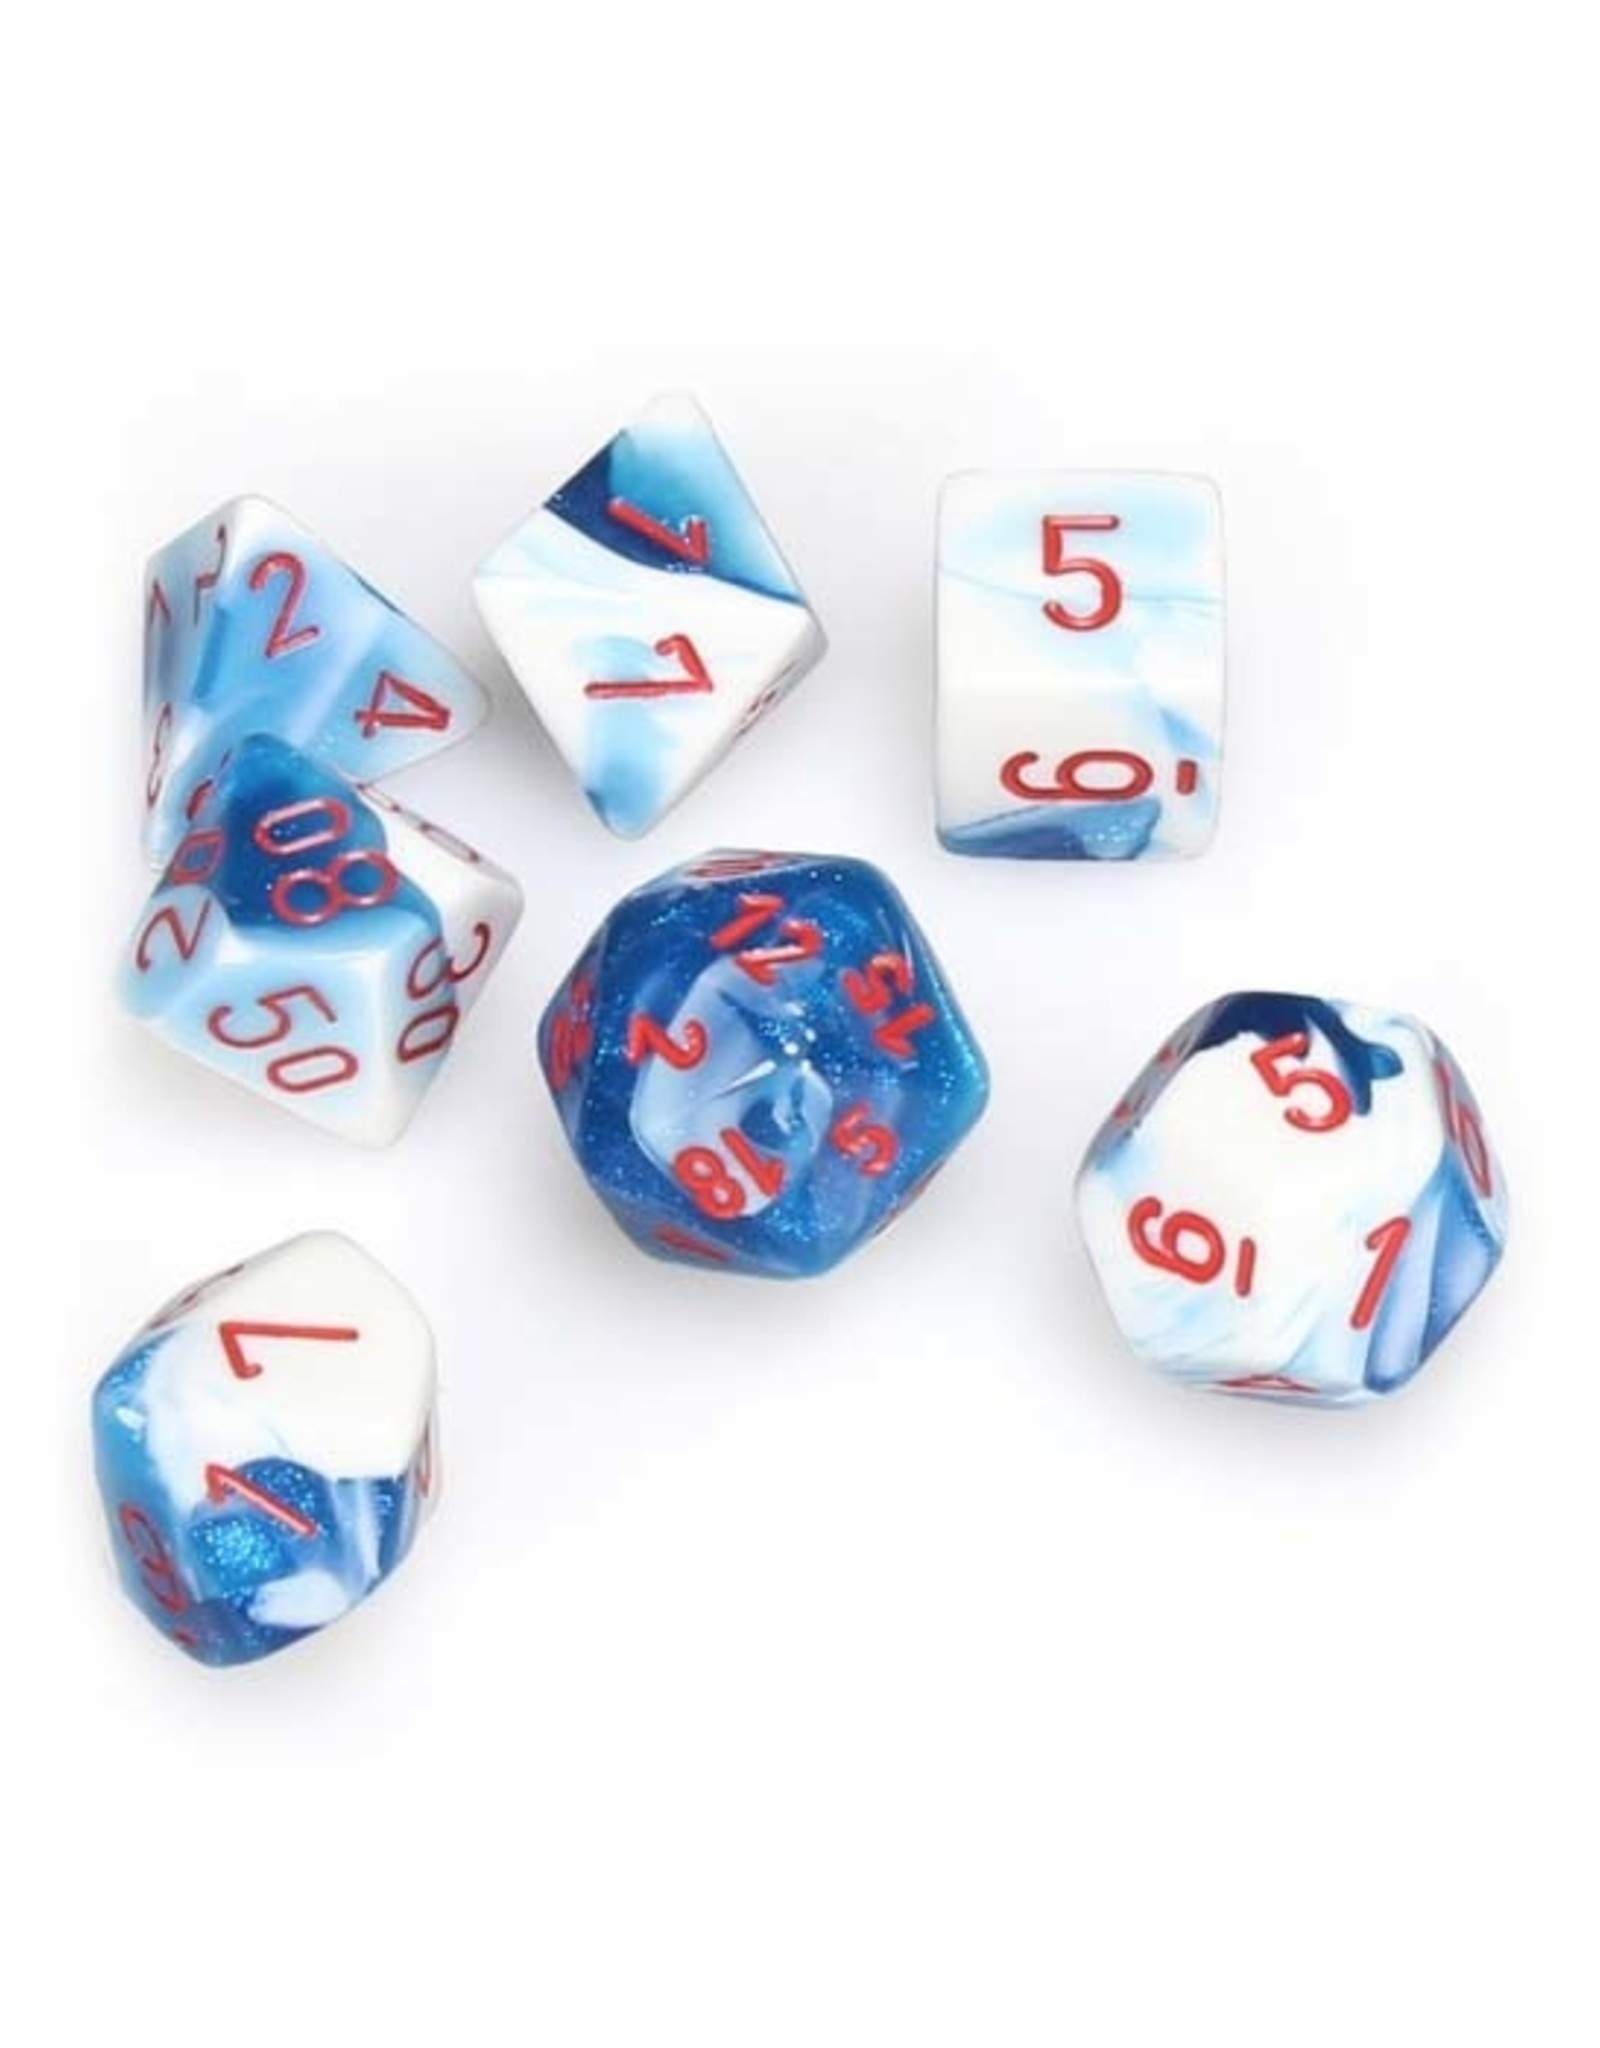 Chessex Chessex: Poly 7 Set - Gemini - Astral Blue-White w/ Red